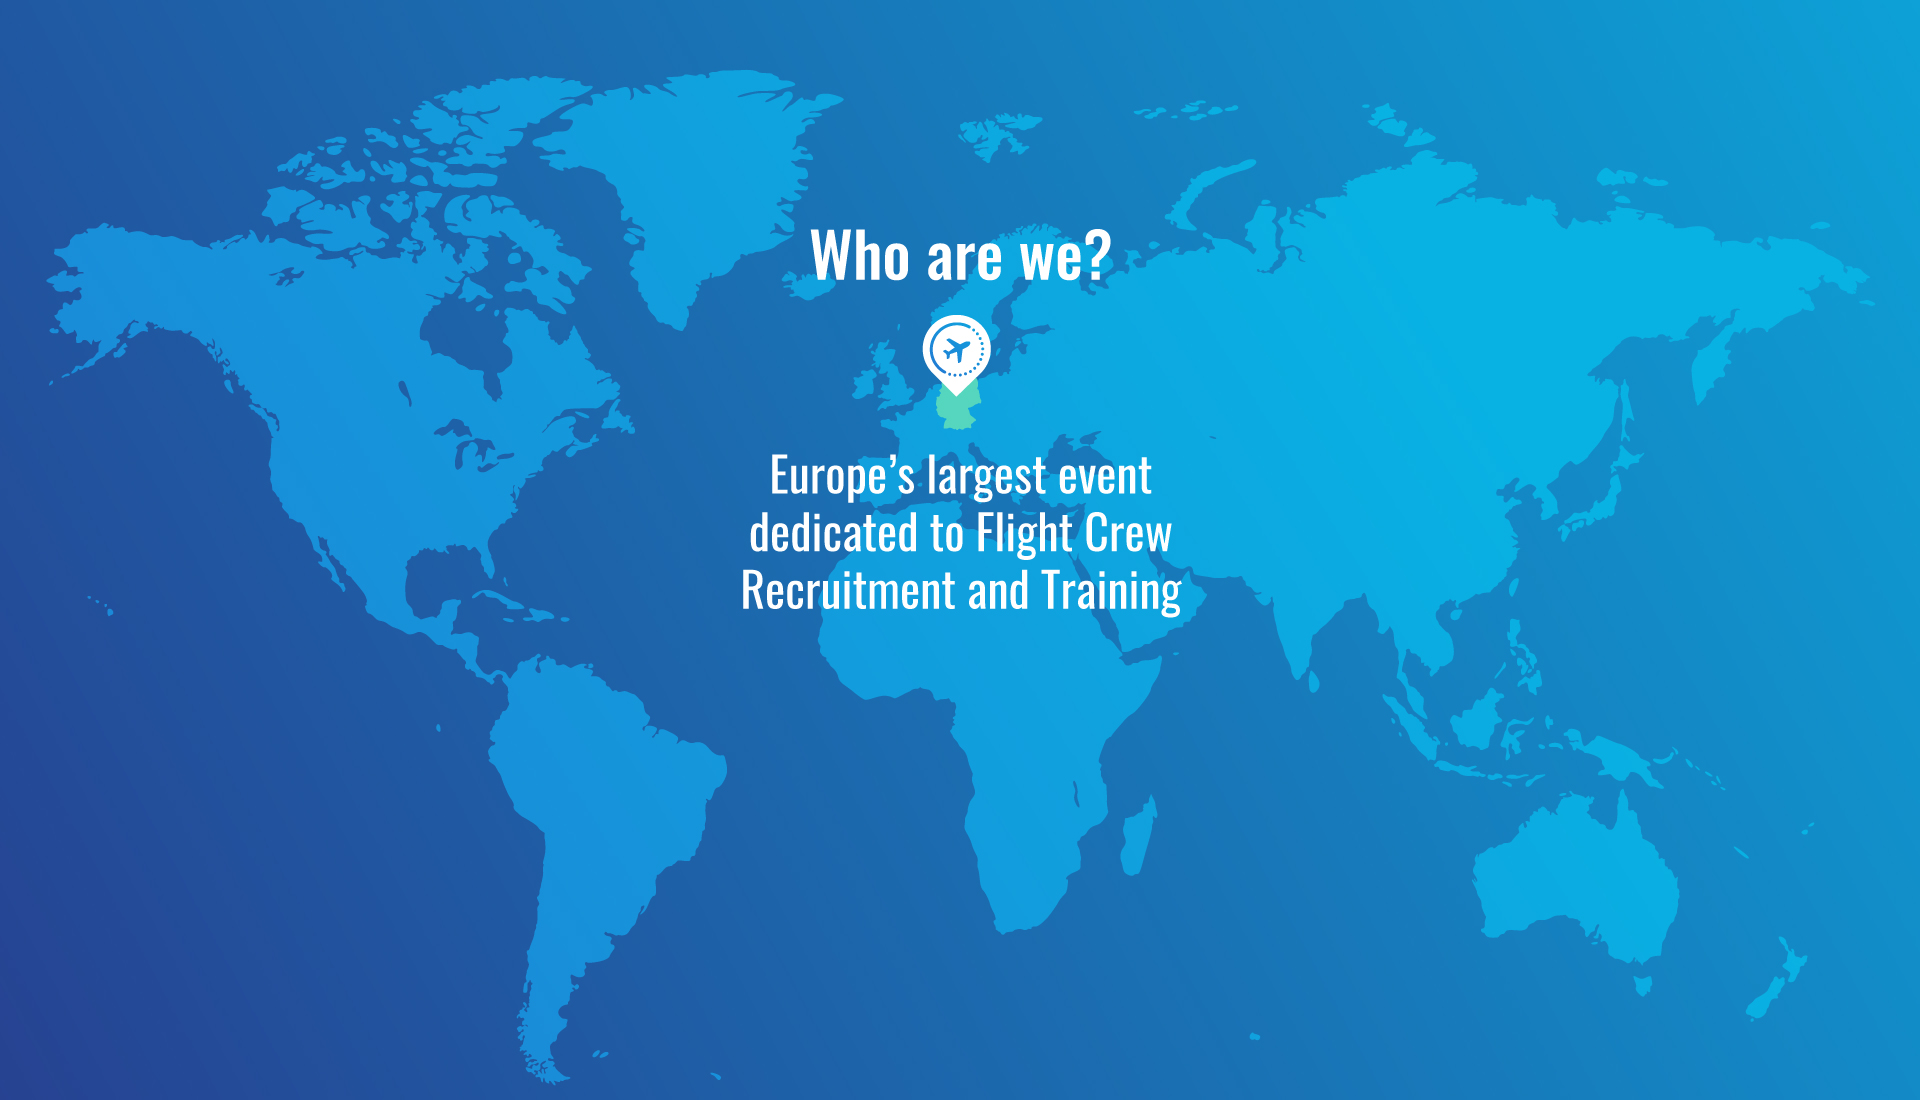 flight crew recruitment and training